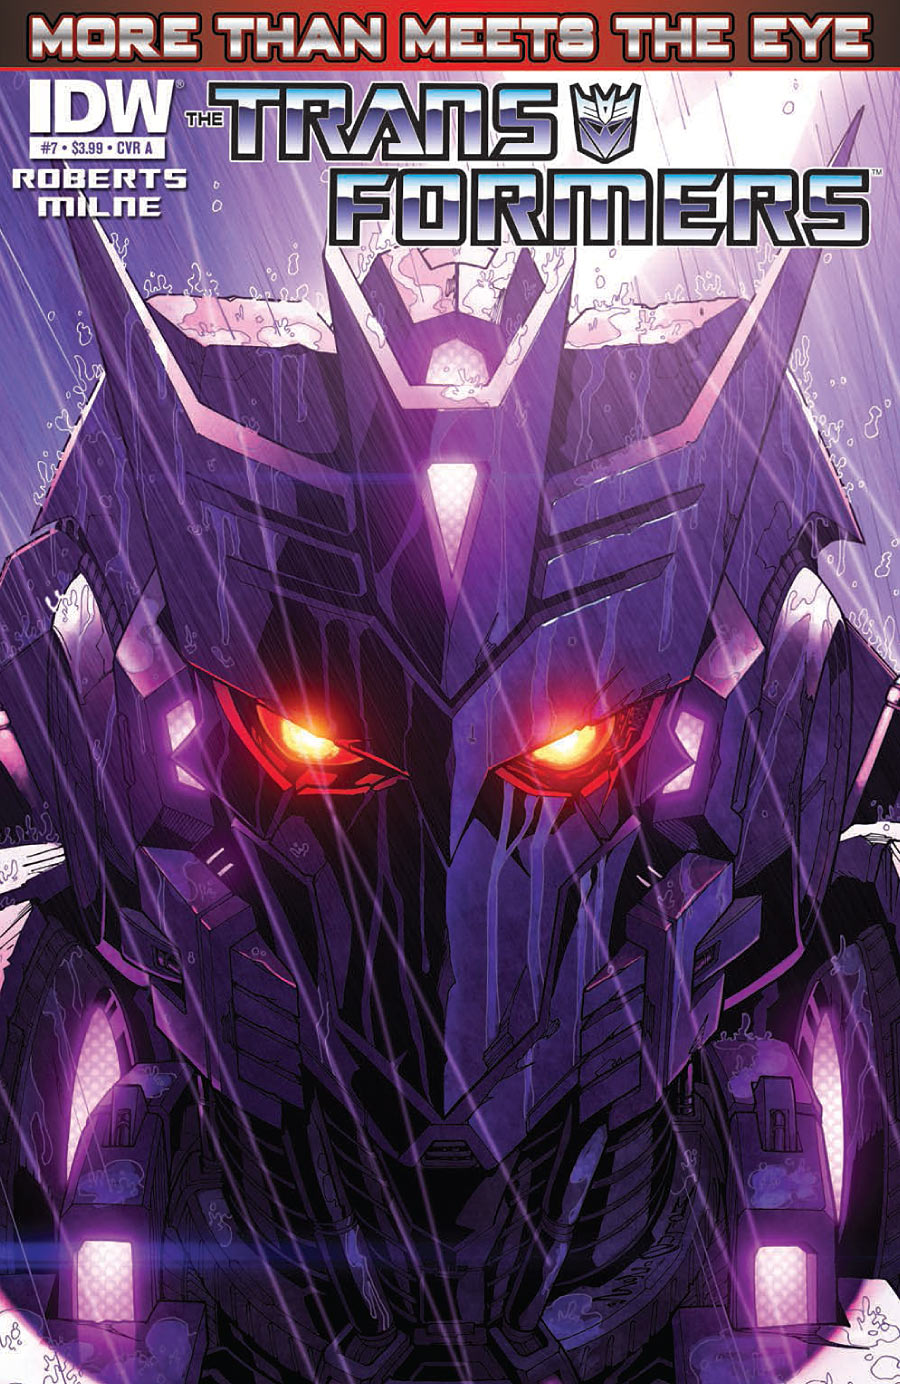 Transformers More Than Meets the Eye #7 Image